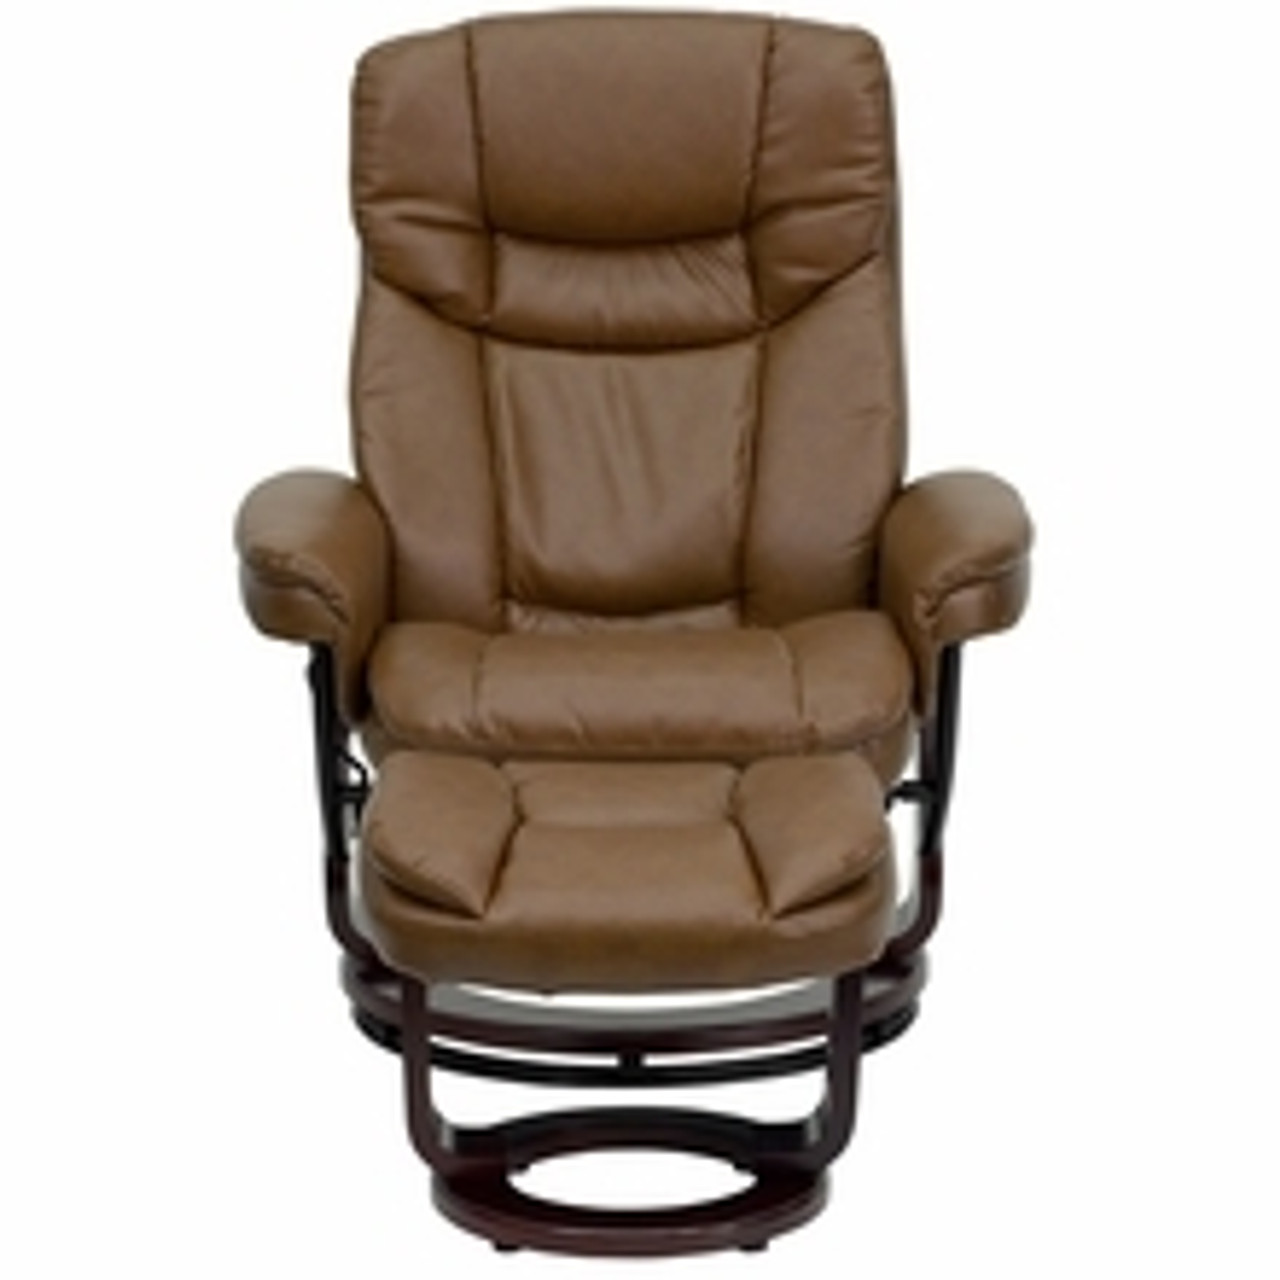 Awesome Flash Furniture Light Brown Leather Recliner Andrewgaddart Wooden Chair Designs For Living Room Andrewgaddartcom